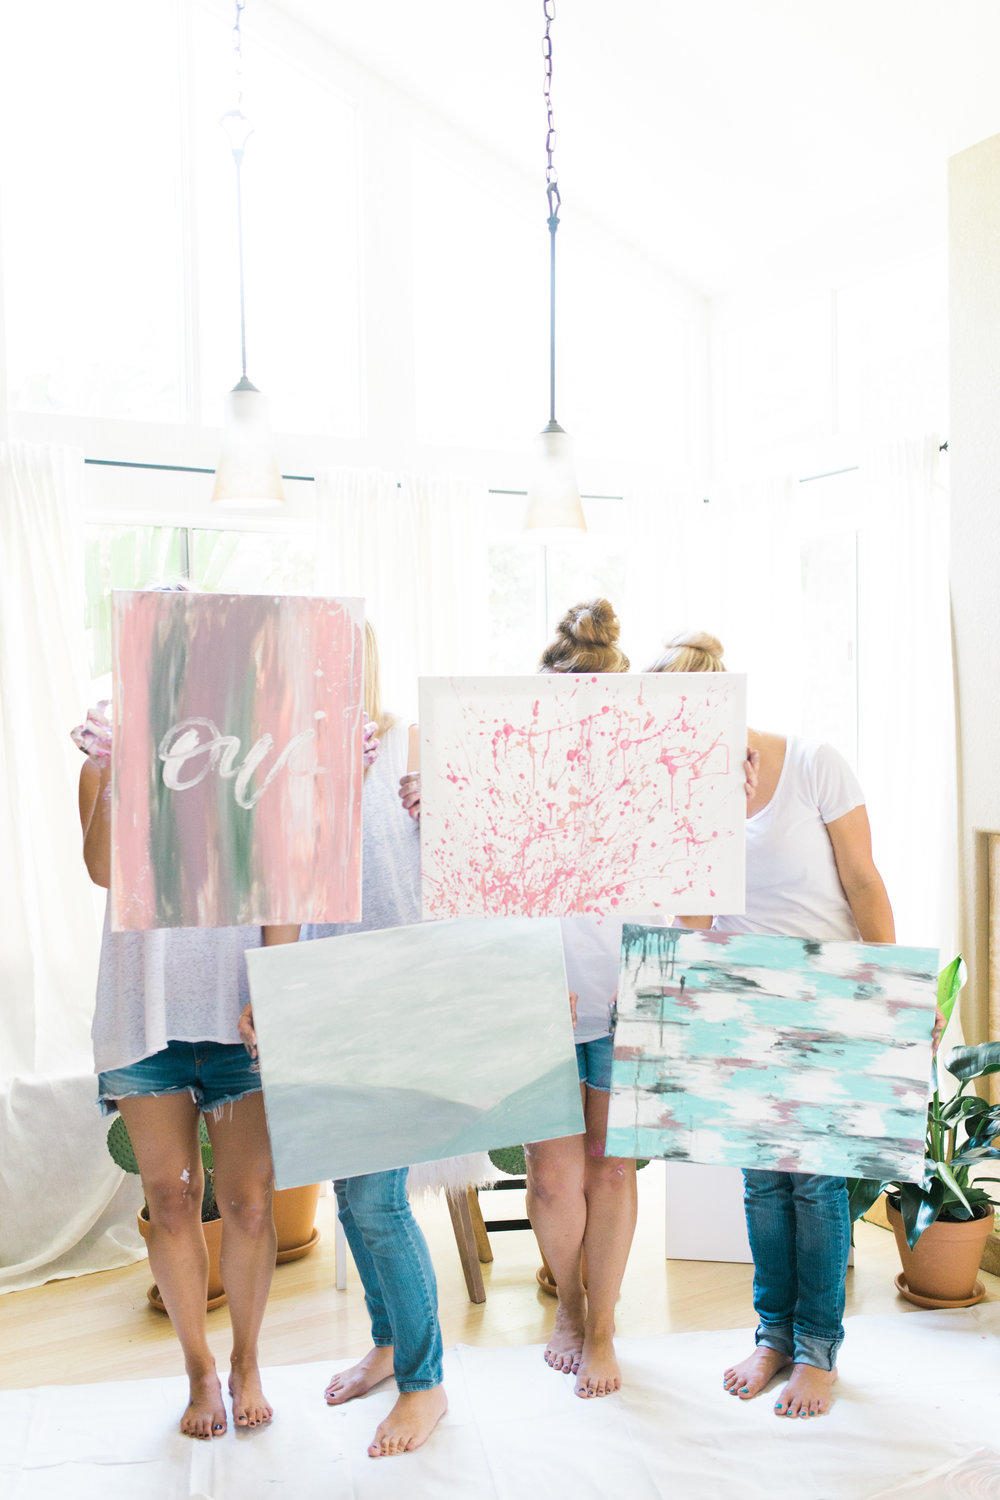 Painting party art | A Fabulous Fete